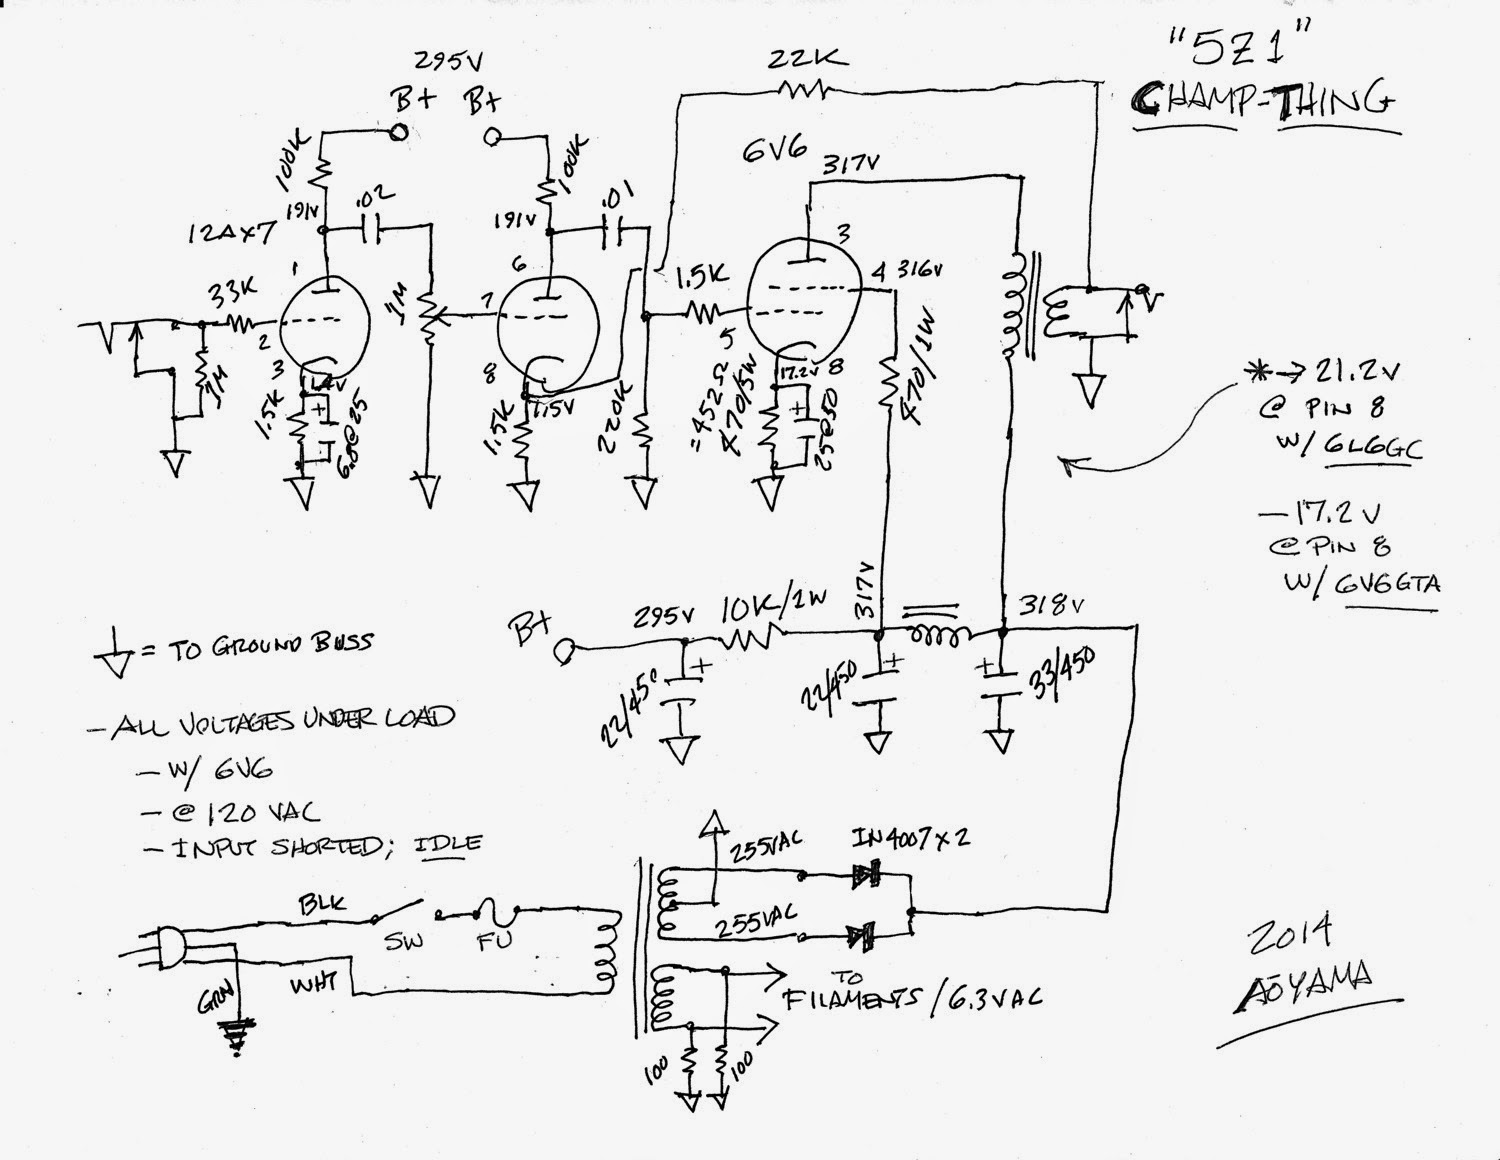 Wiring diagram for guitar footswitch tciaffairs origami night l the 99 cent ch part 1